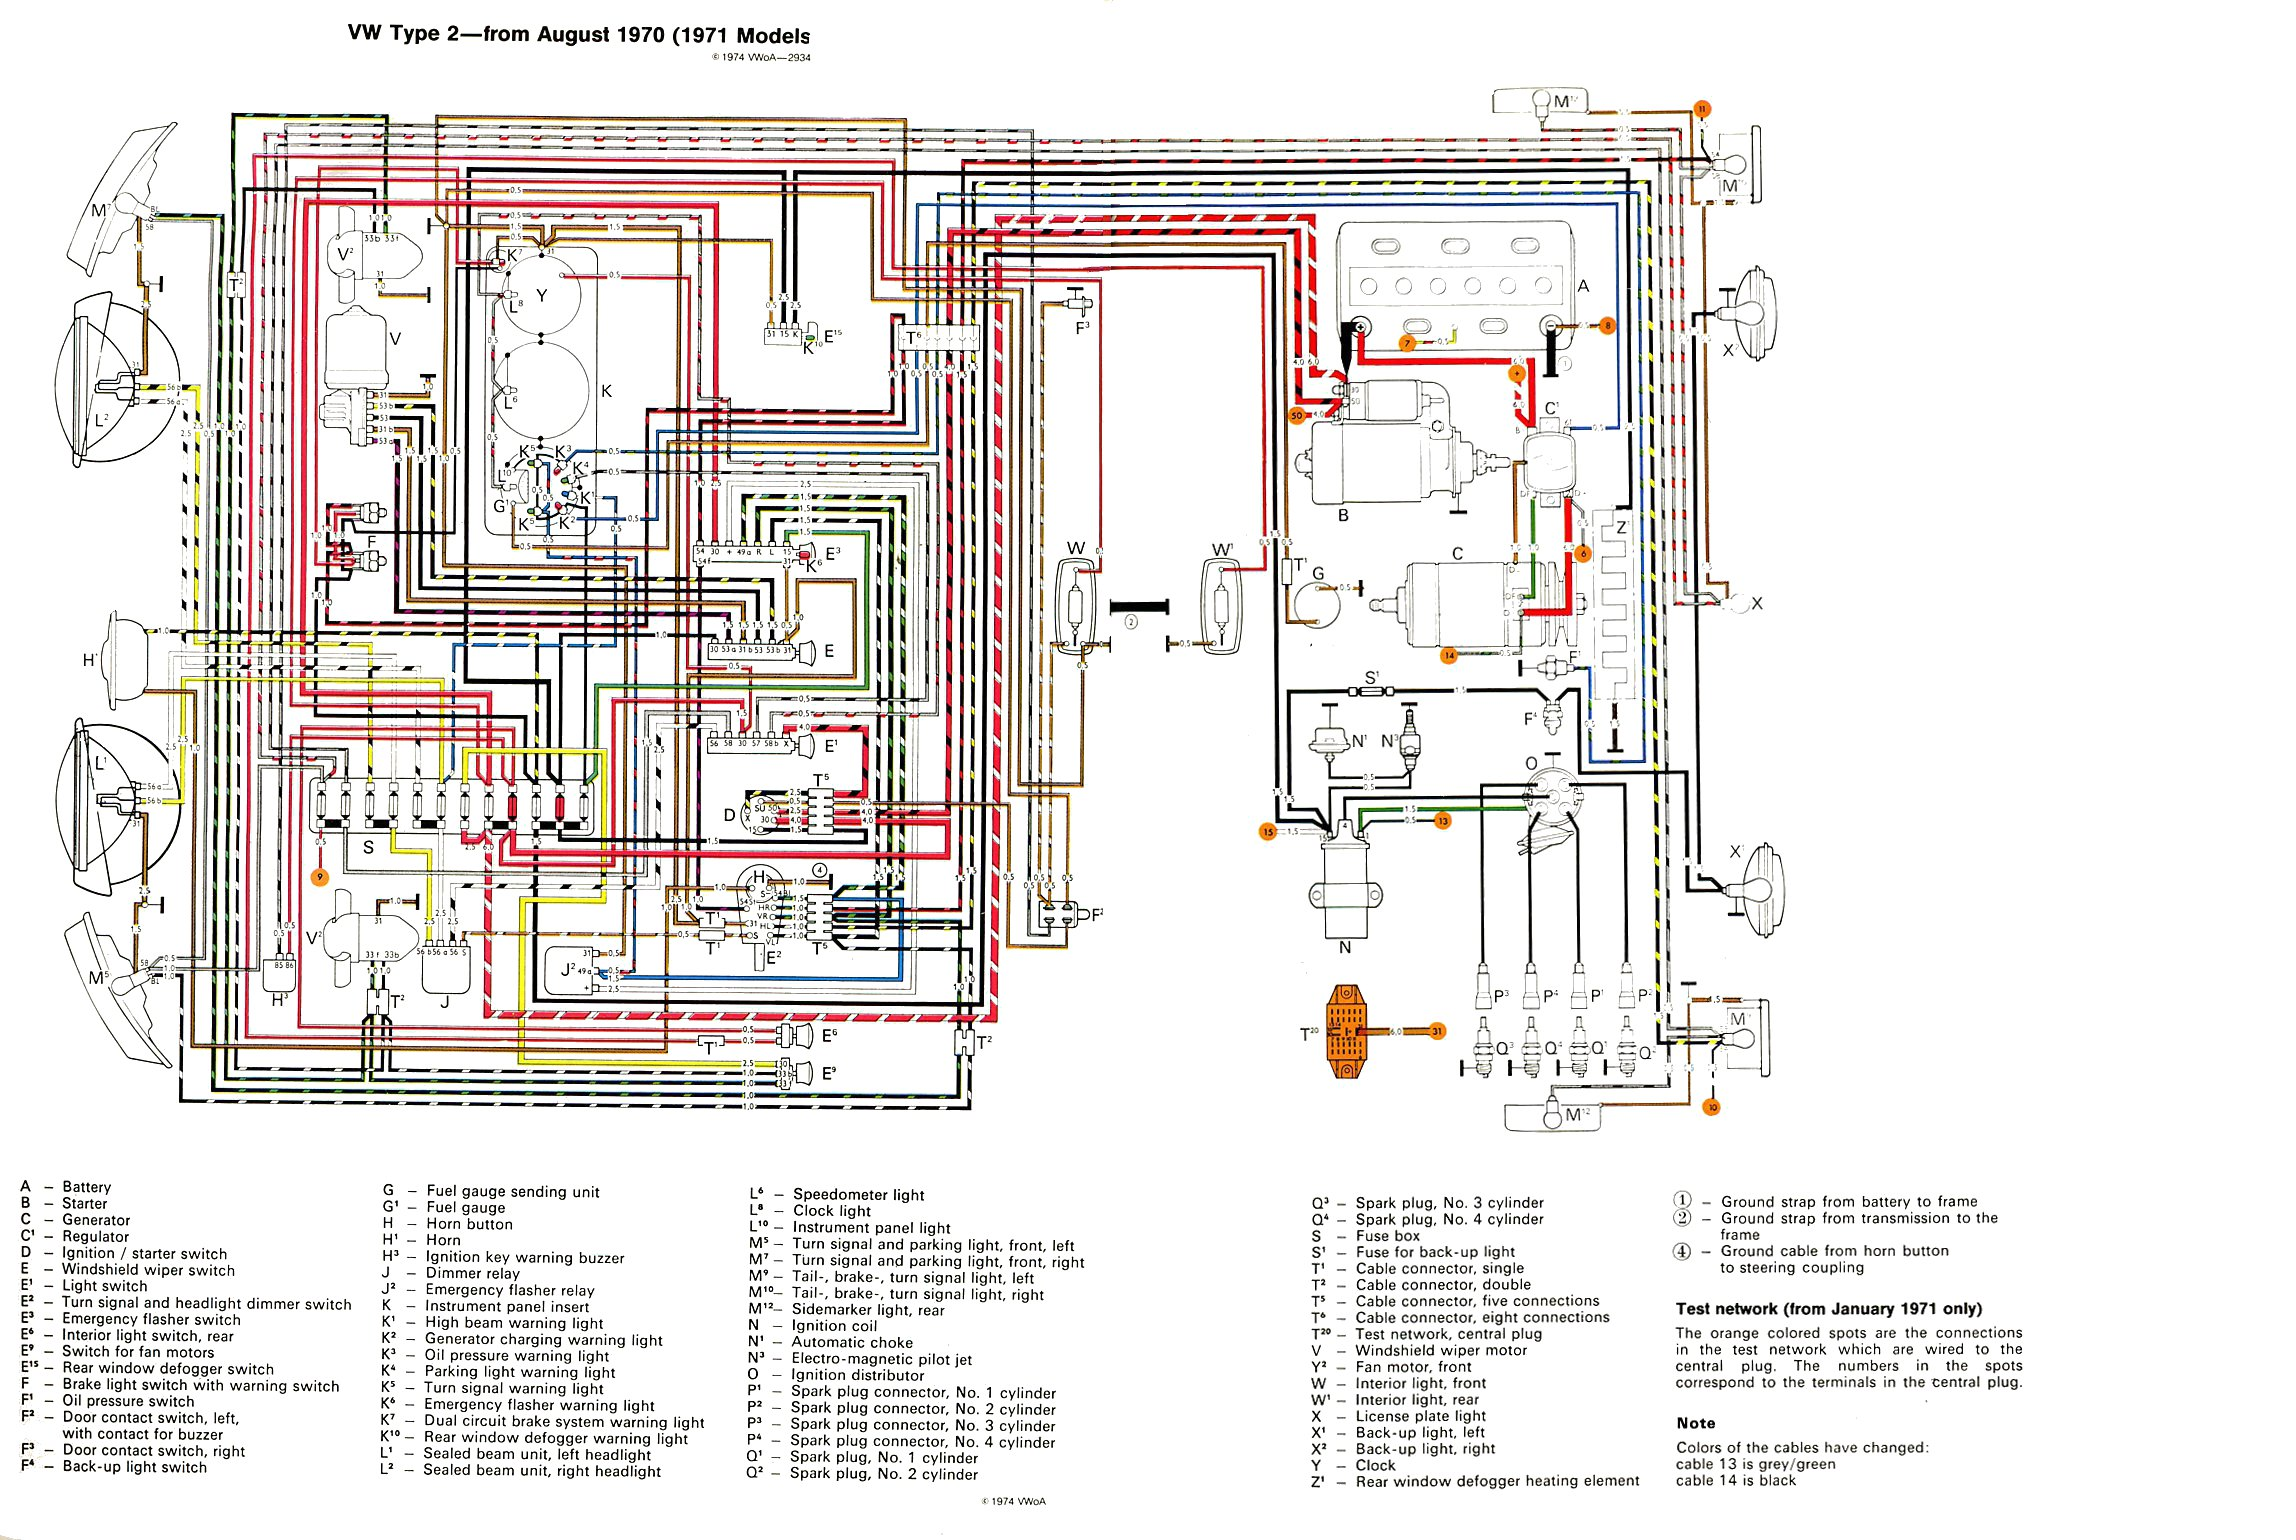 baybus_71 71 c10 wiring diagram 1970 gmc truck wiring diagram \u2022 free wiring 1967 gmc pickup wiring diagram at panicattacktreatment.co